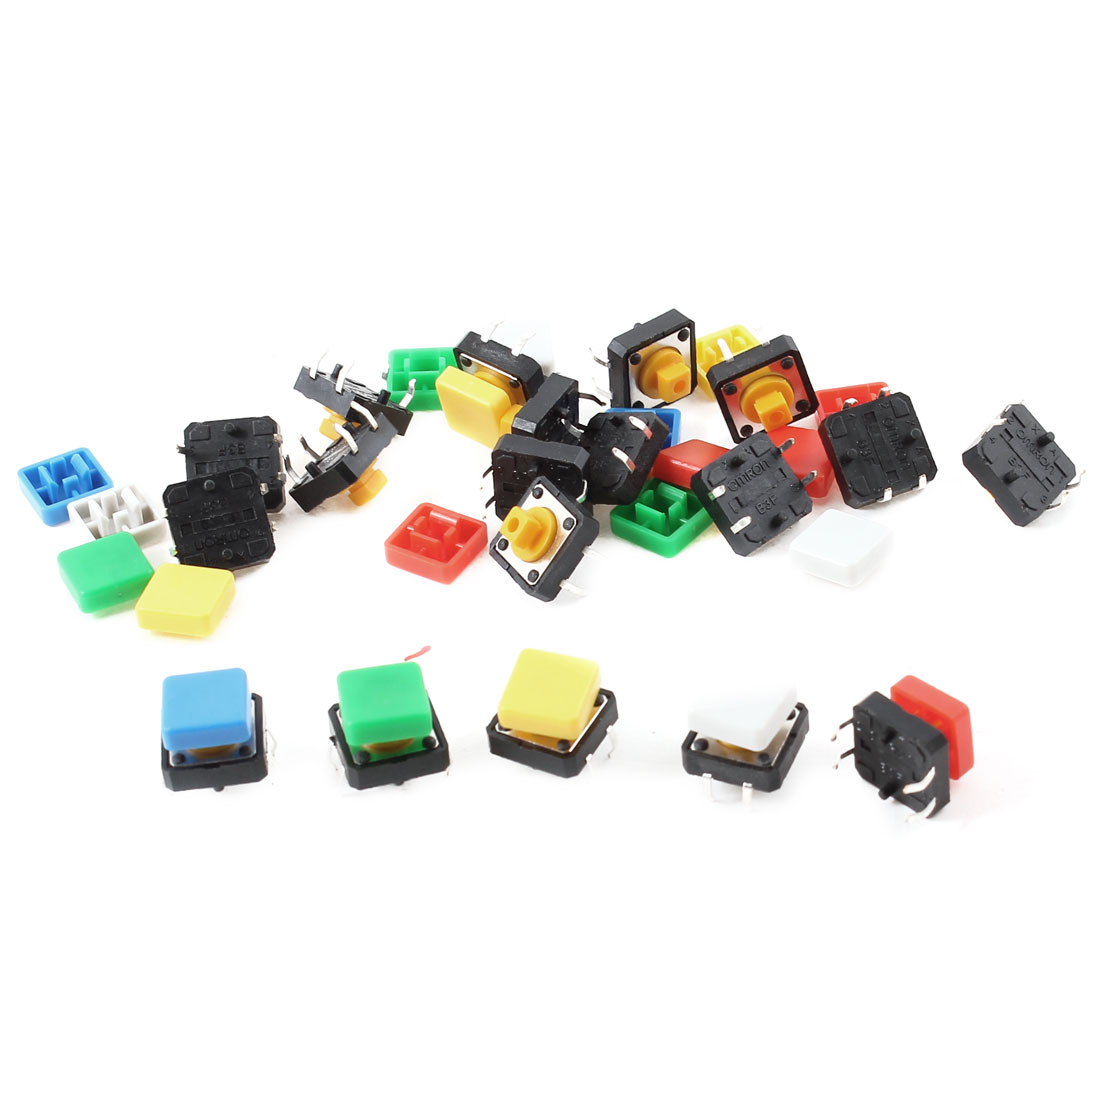 20pcs 12x12x7.3mm 4Pin DIP Through Hole Mount Momentary Tact Switch w Square Cap